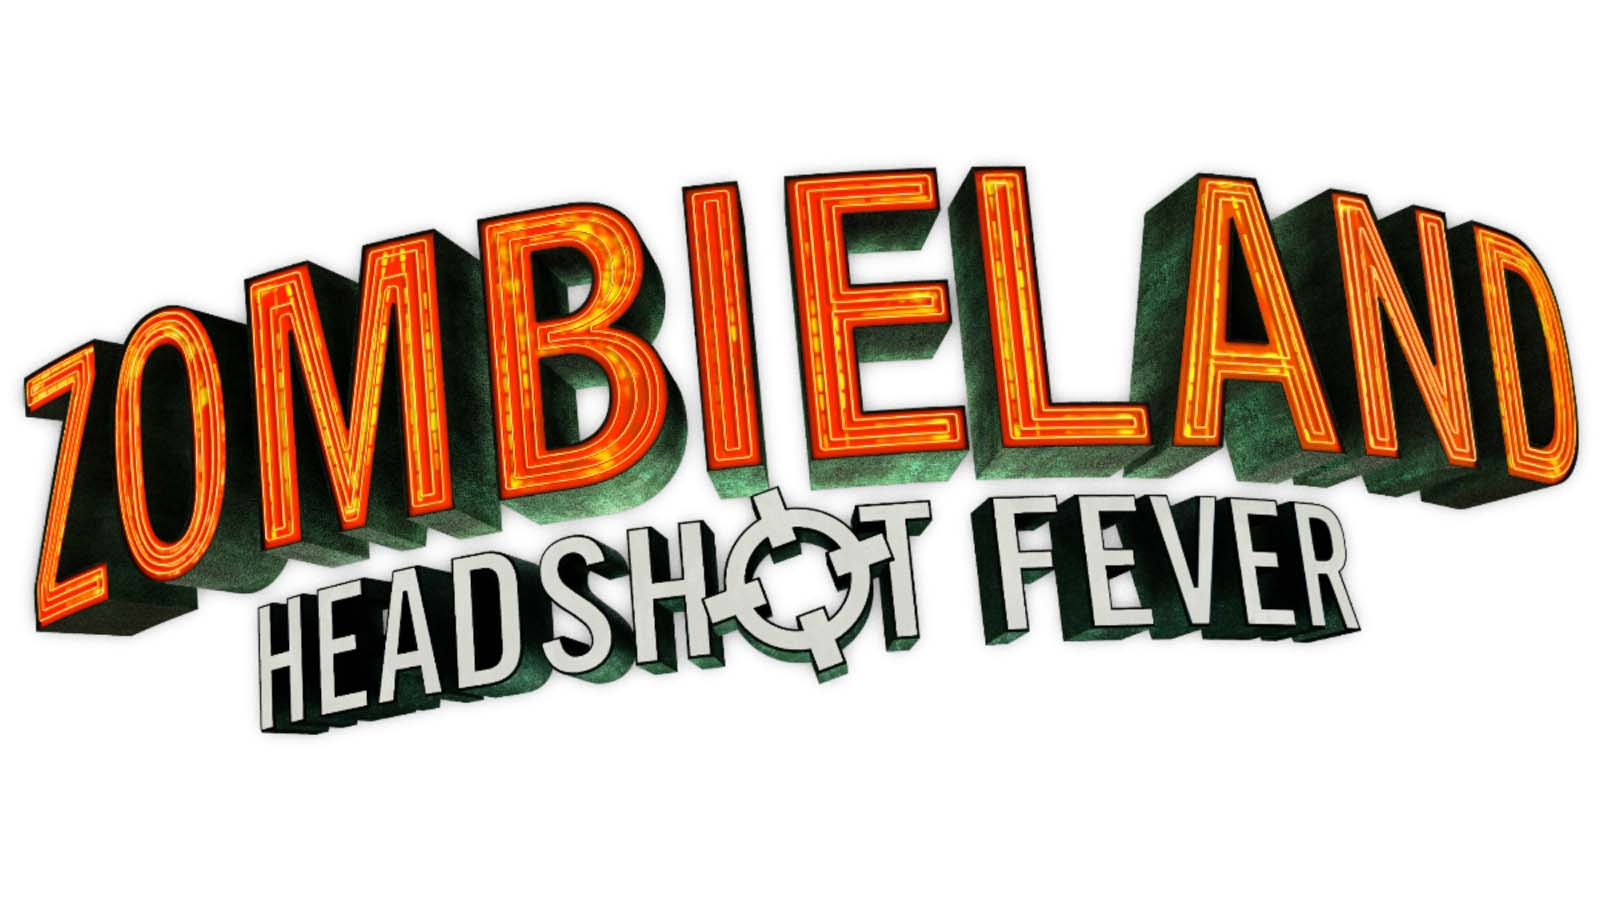 Zombieland VR Headshot Fever releasing this Spring